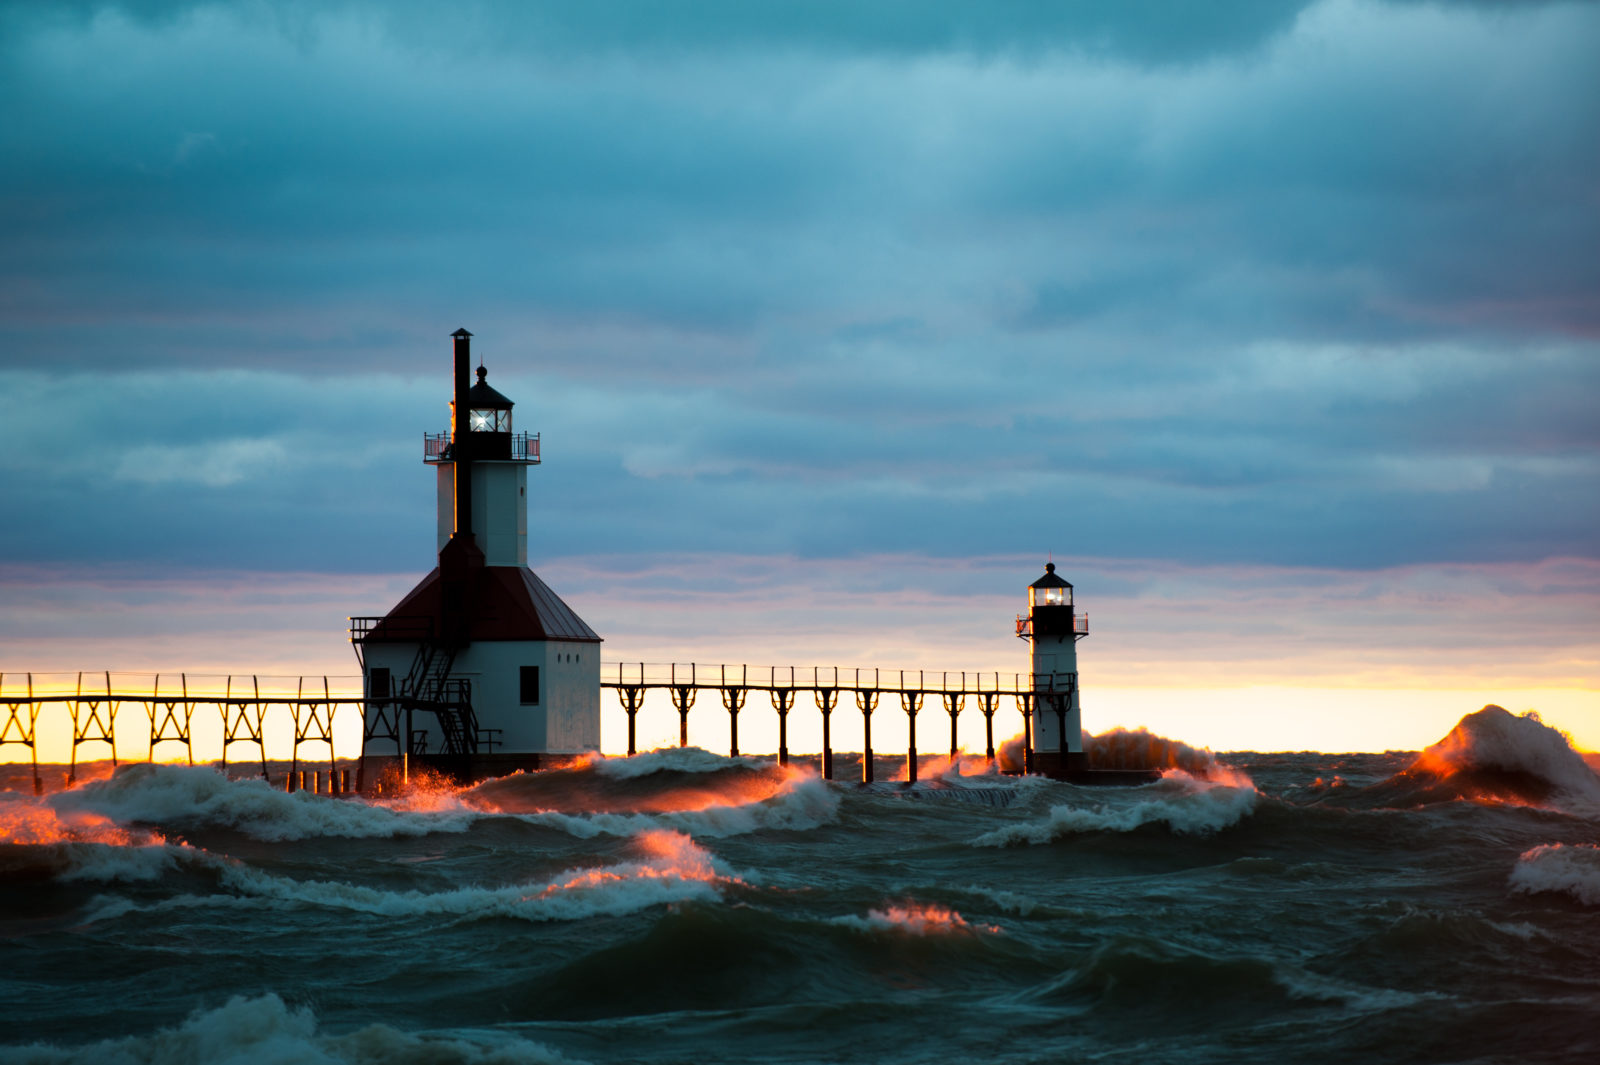 St. Joseph, MI, North Pier Lighthouses (Inner and Outer) at Sunset